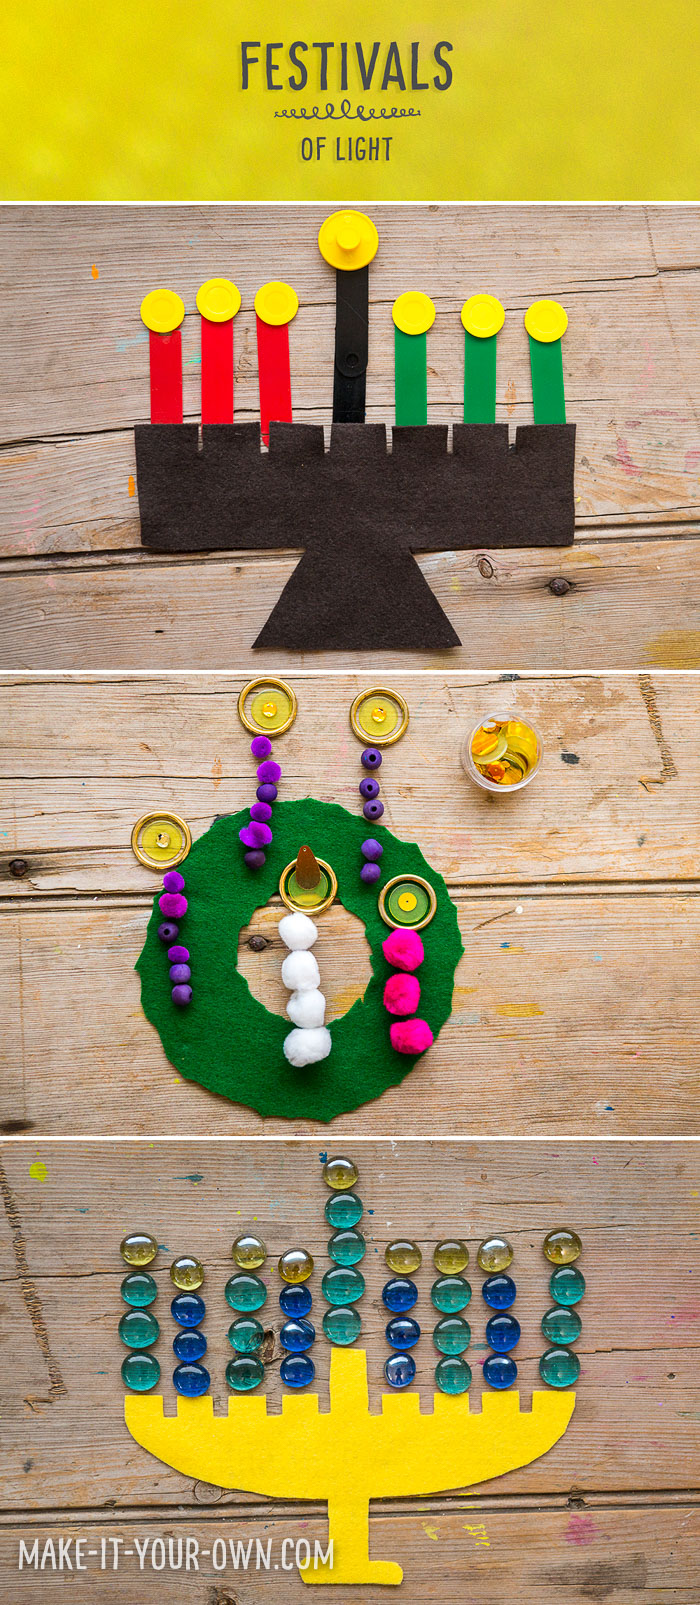 Festivals of Light:  We provide a template for you to create an Advent wreath, Menorah & Kinara with loose parts!